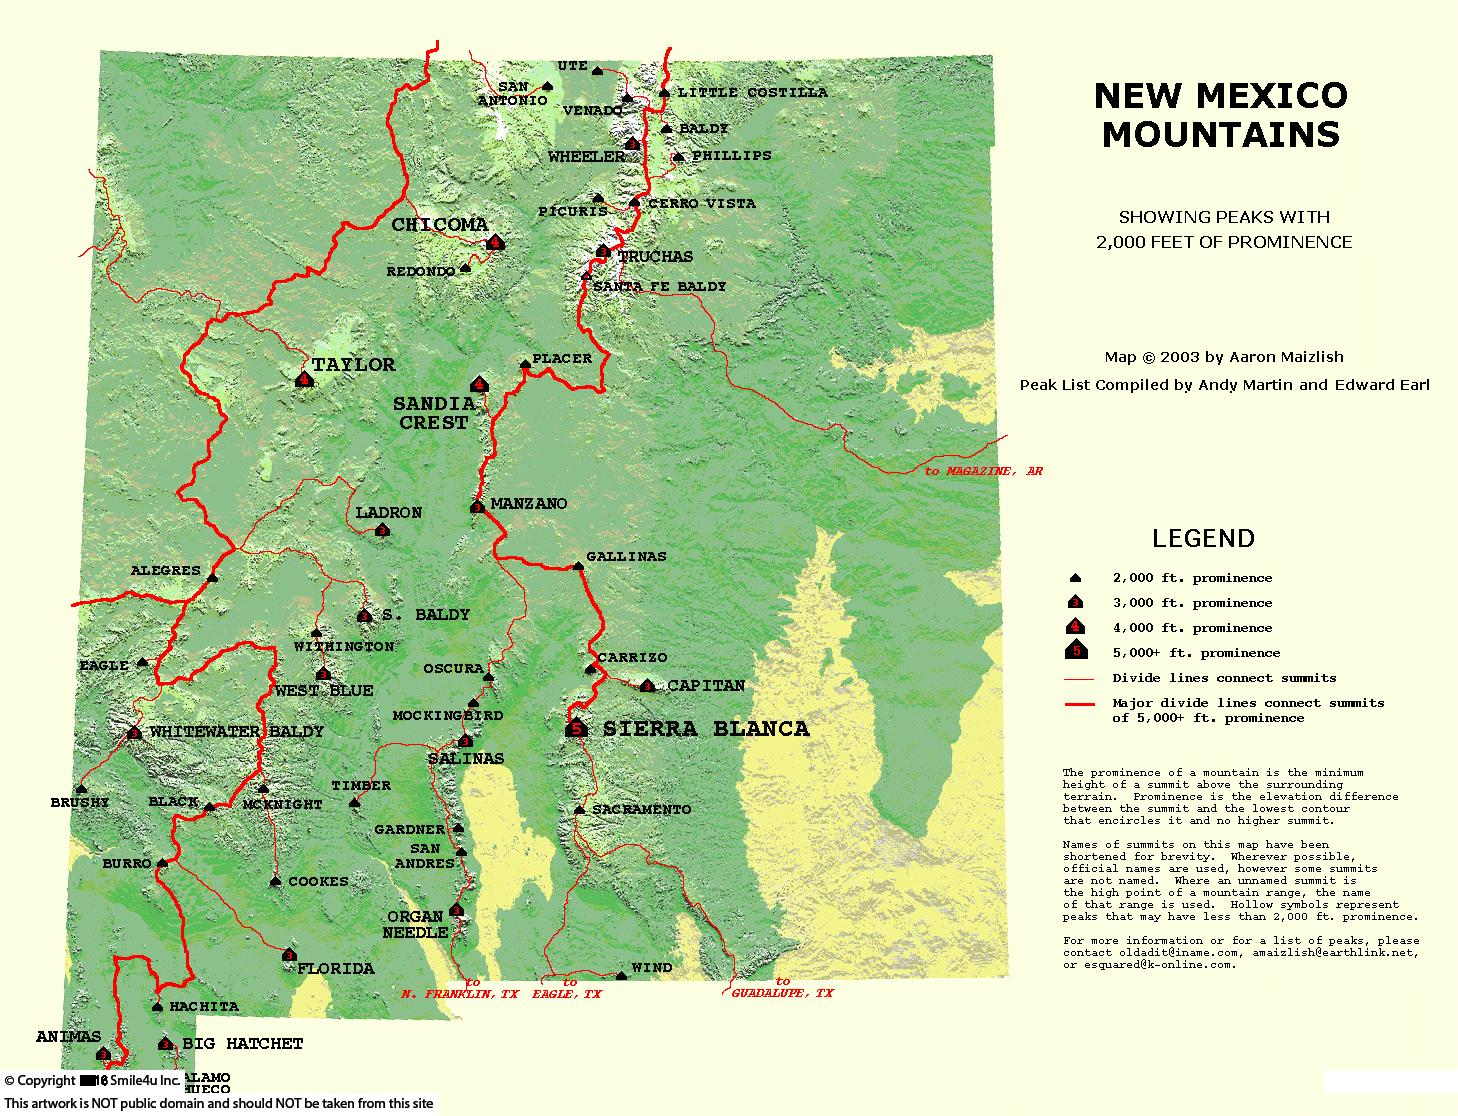 233363_watermarked_newmexicosummits.png